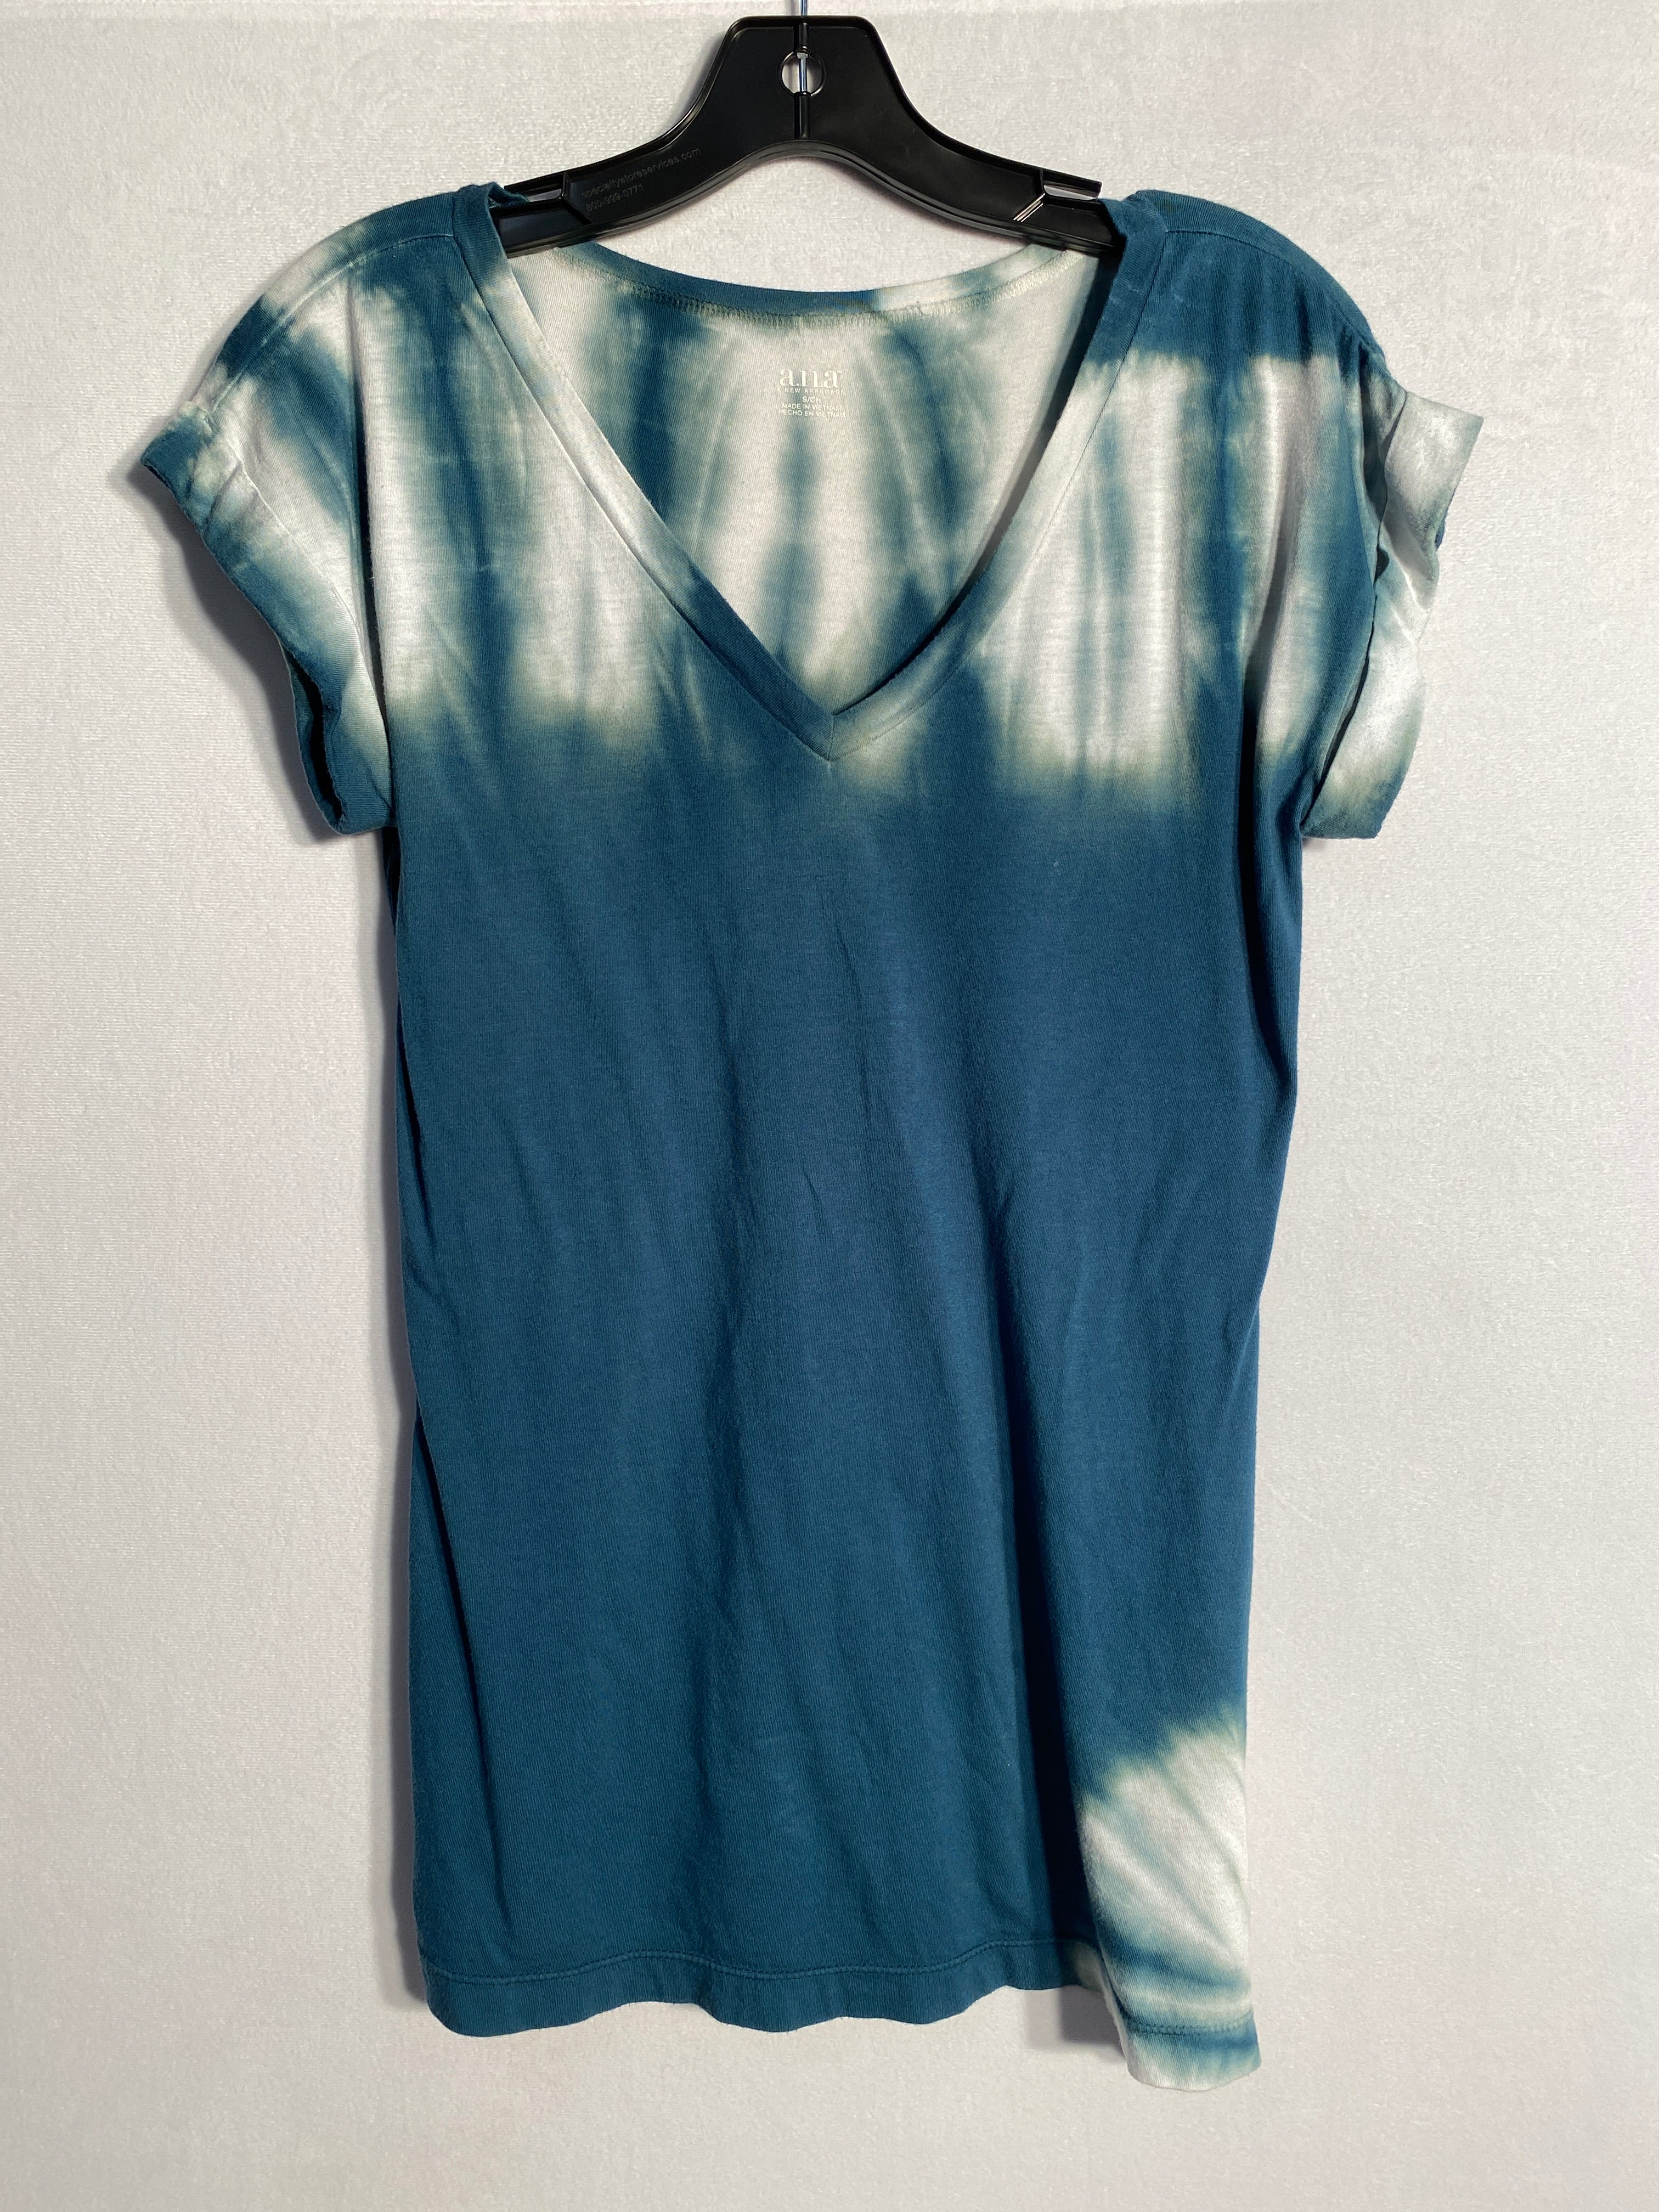 Primary Photo - BRAND: ANA<BR>STYLE: TOP SHORT SLEEVE<BR>COLOR: TIE DYE<BR>SIZE: S<BR>SKU: 313-31328-21971